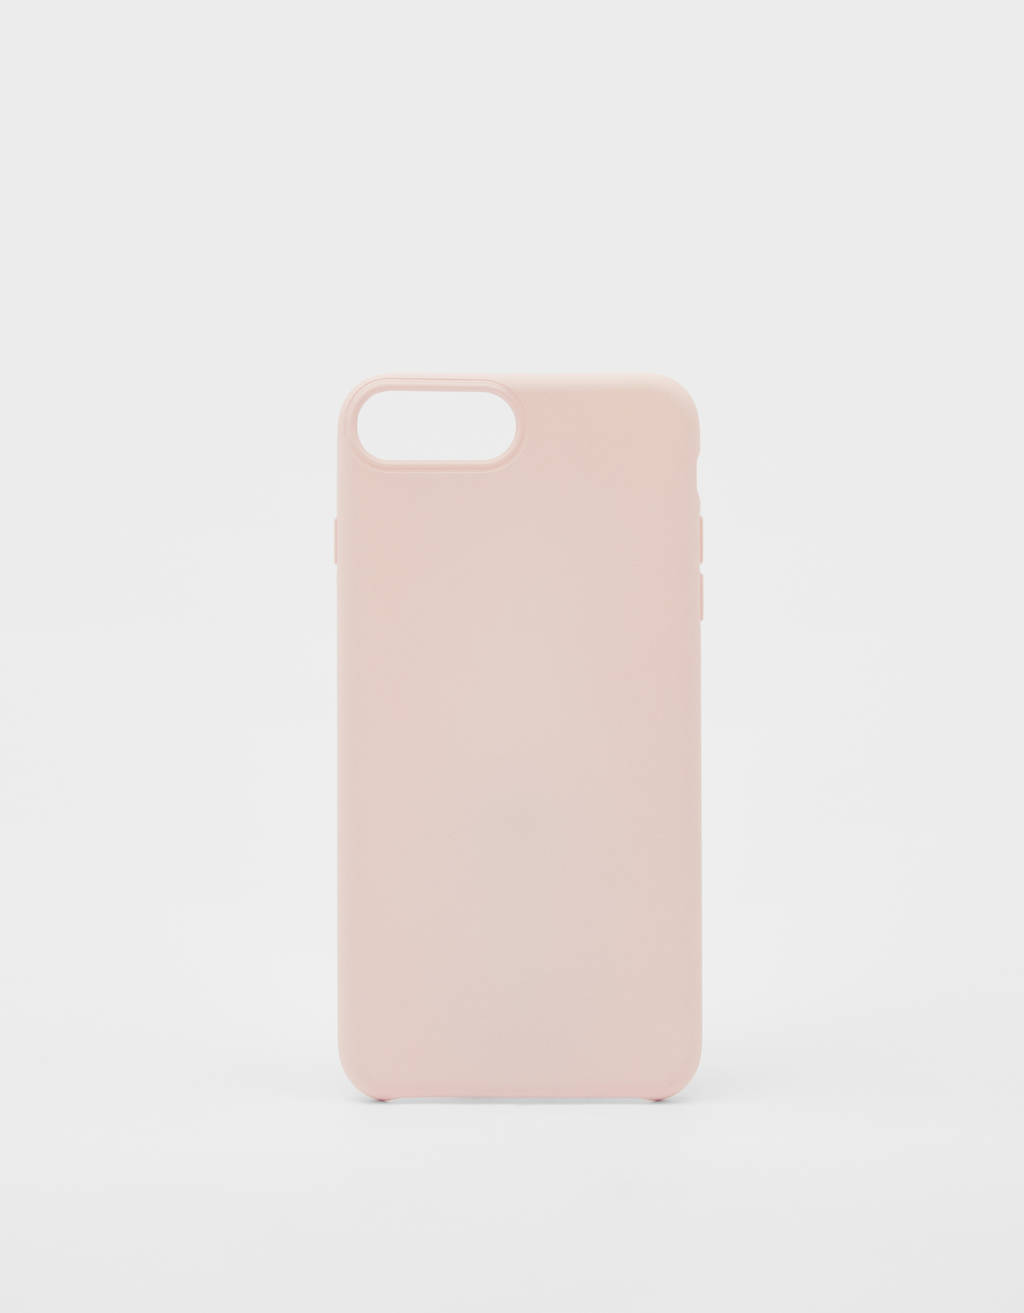 Plain iPhone 6 Plus / 7 Plus / 8 Plus case